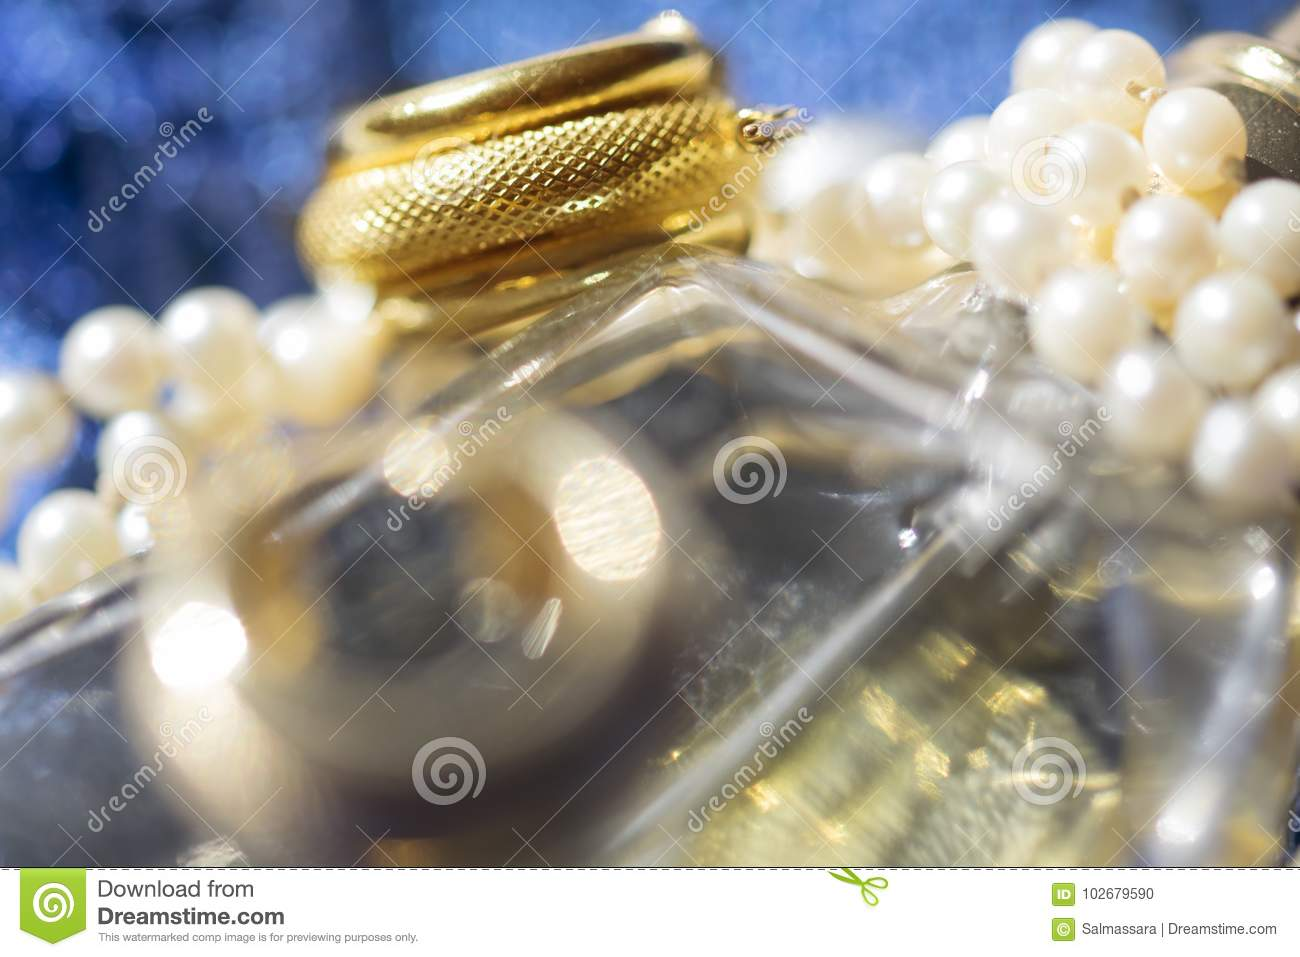 Gold ring and pearl necklace